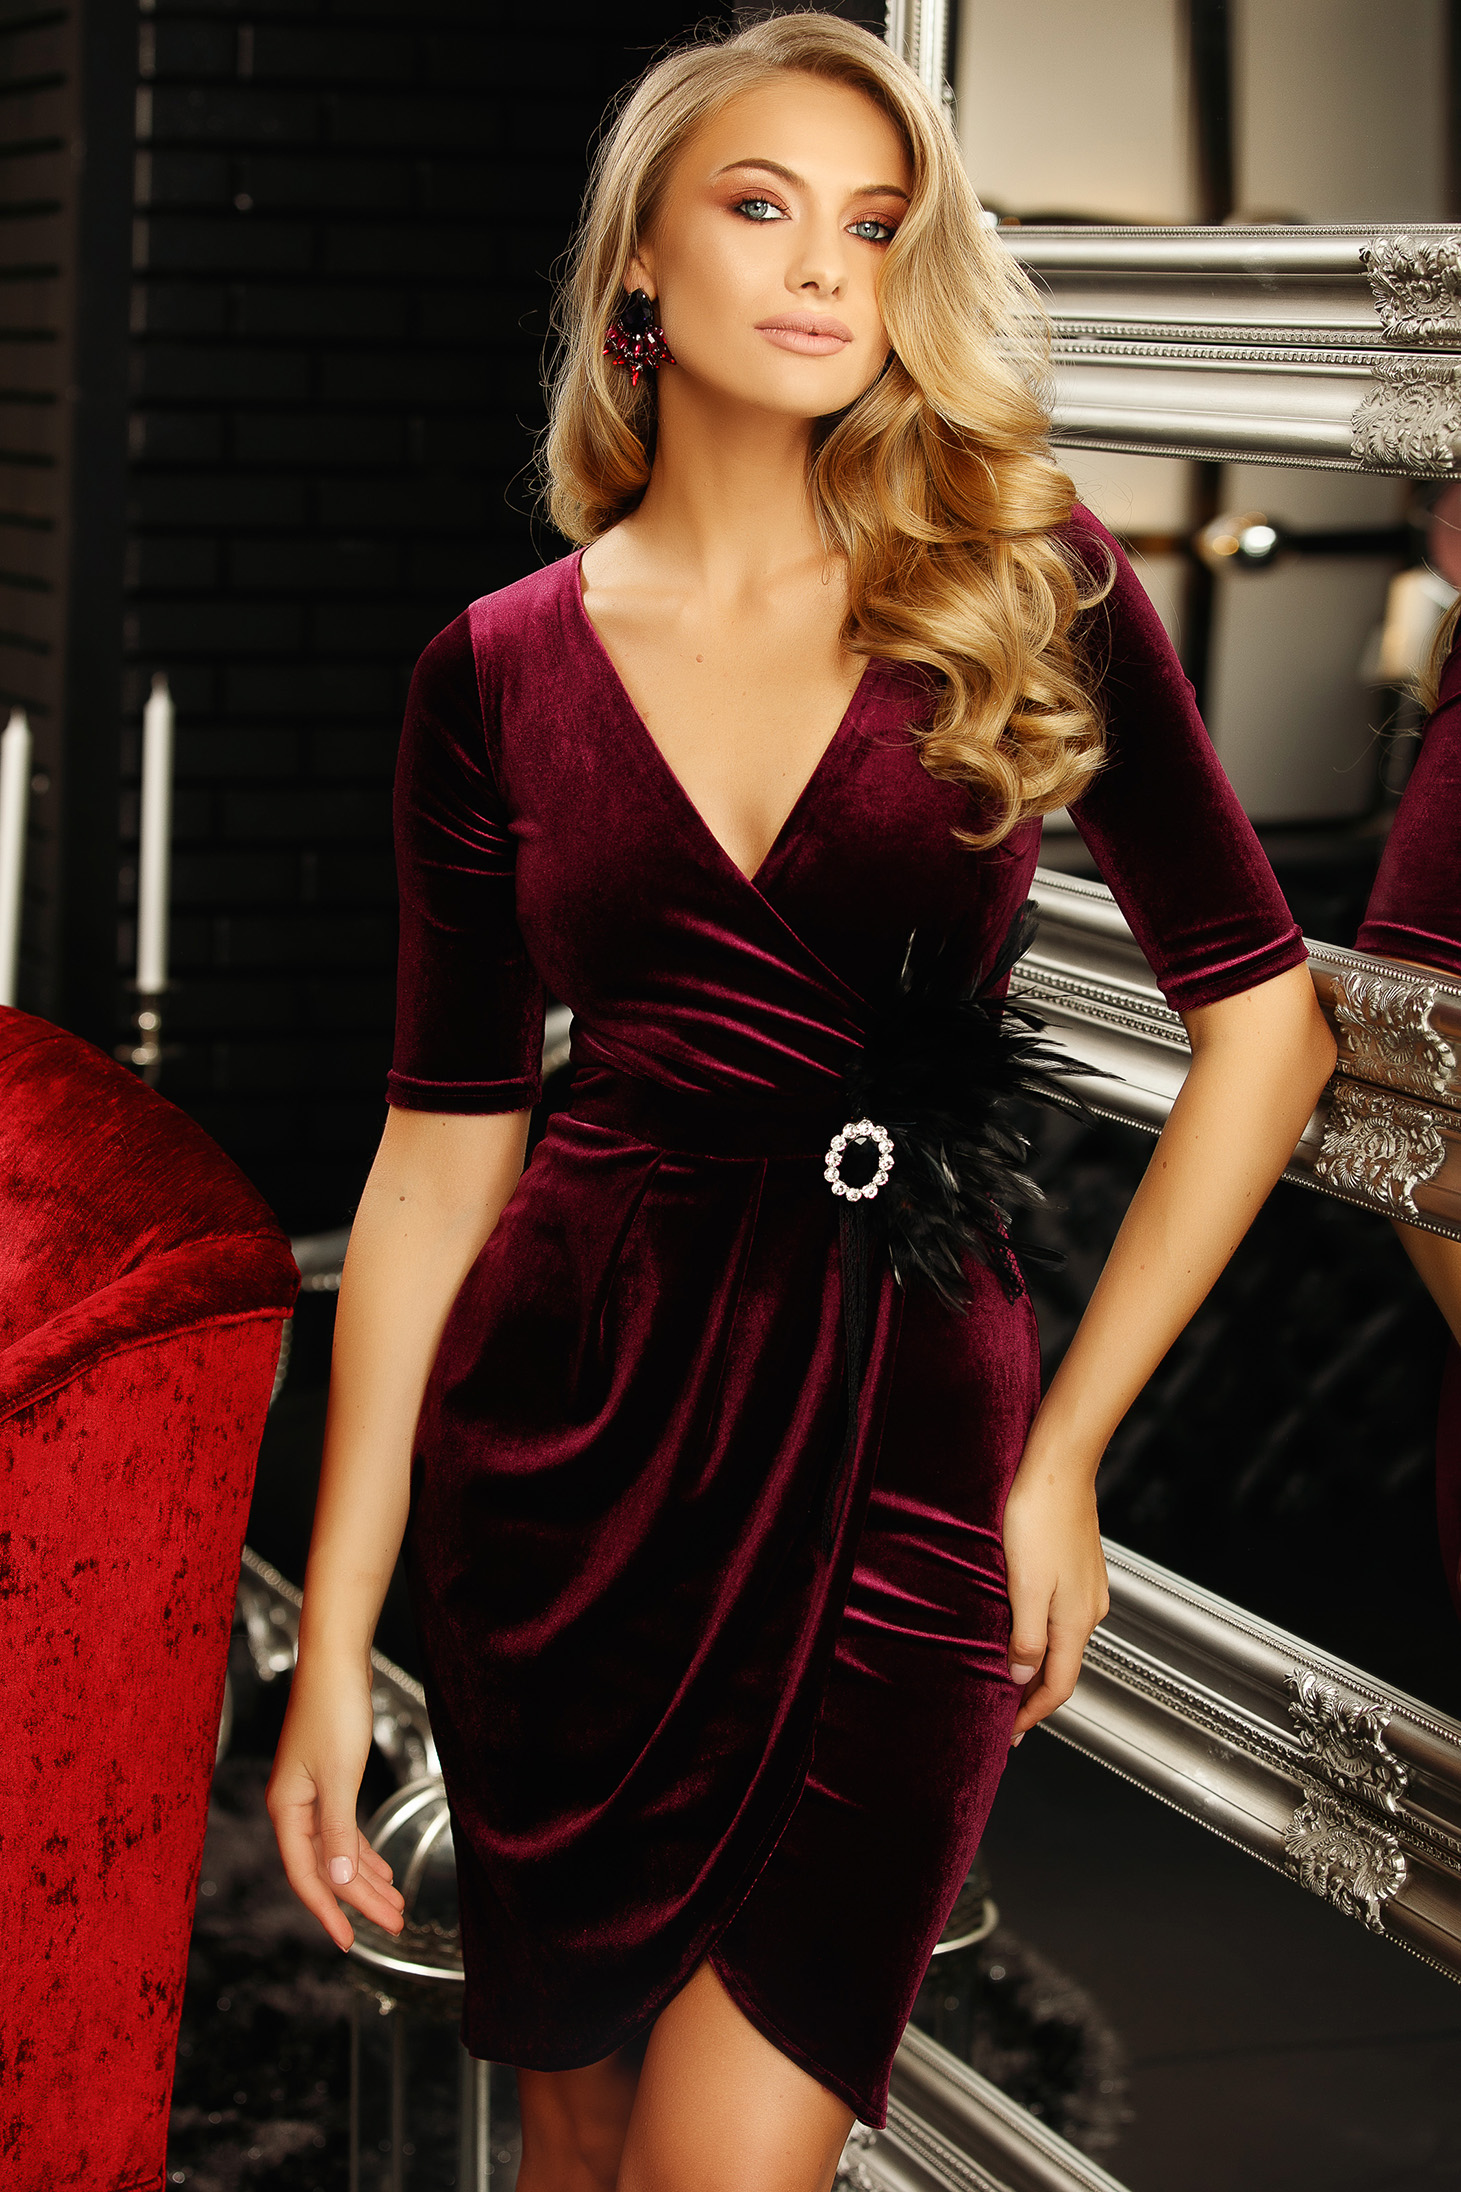 Dress burgundy pencil accessorized with breastpin with v-neckline feather details from velvet